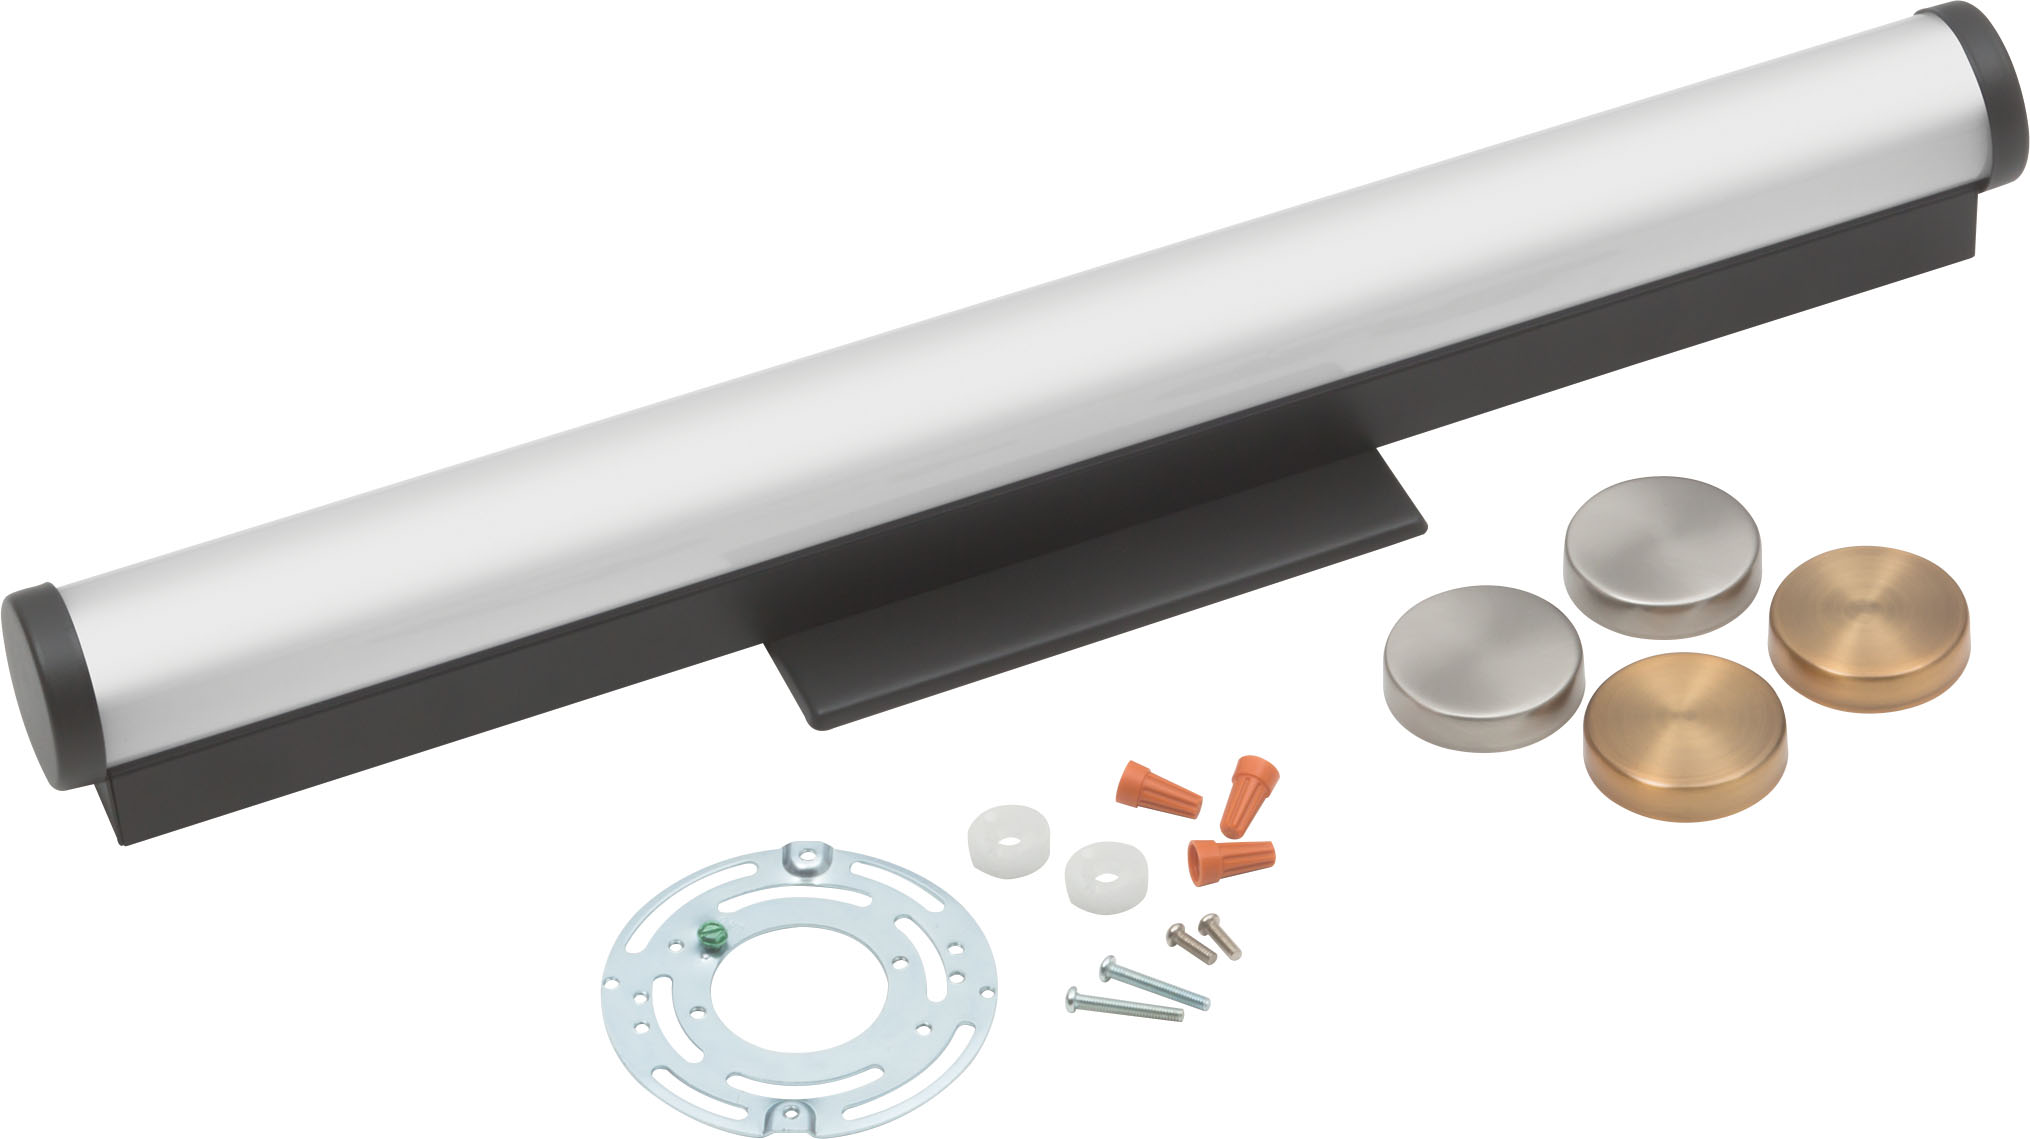 FMVCCLS 24IN MB_Packaging Components_001.jpg